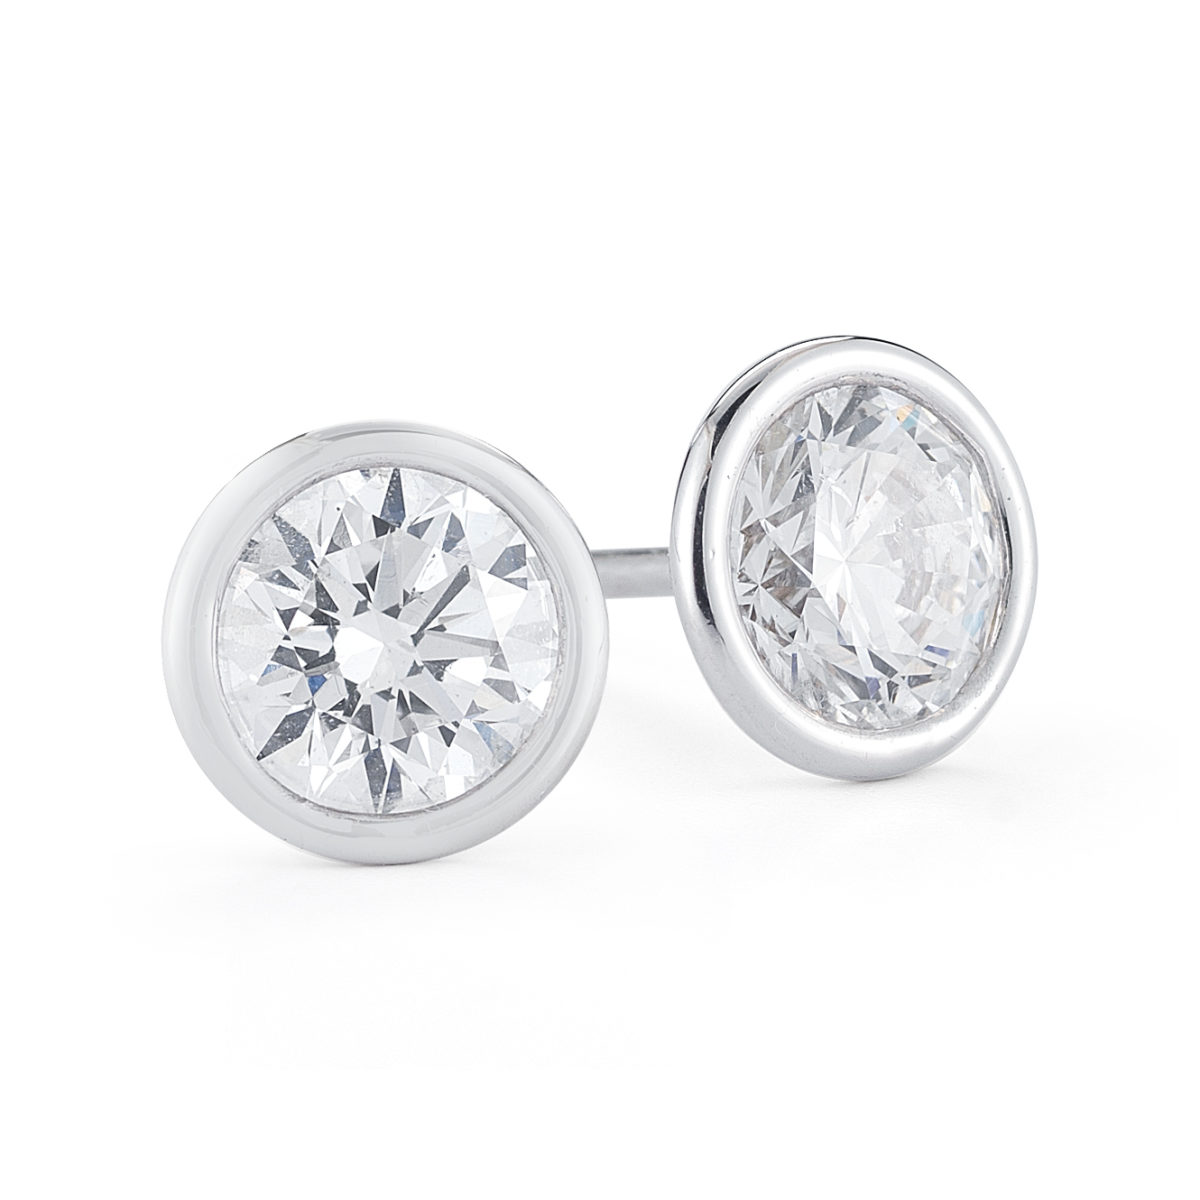 bezel phab your setmain own set in platinum build earrings detailmain nile lrg cup blue diamond